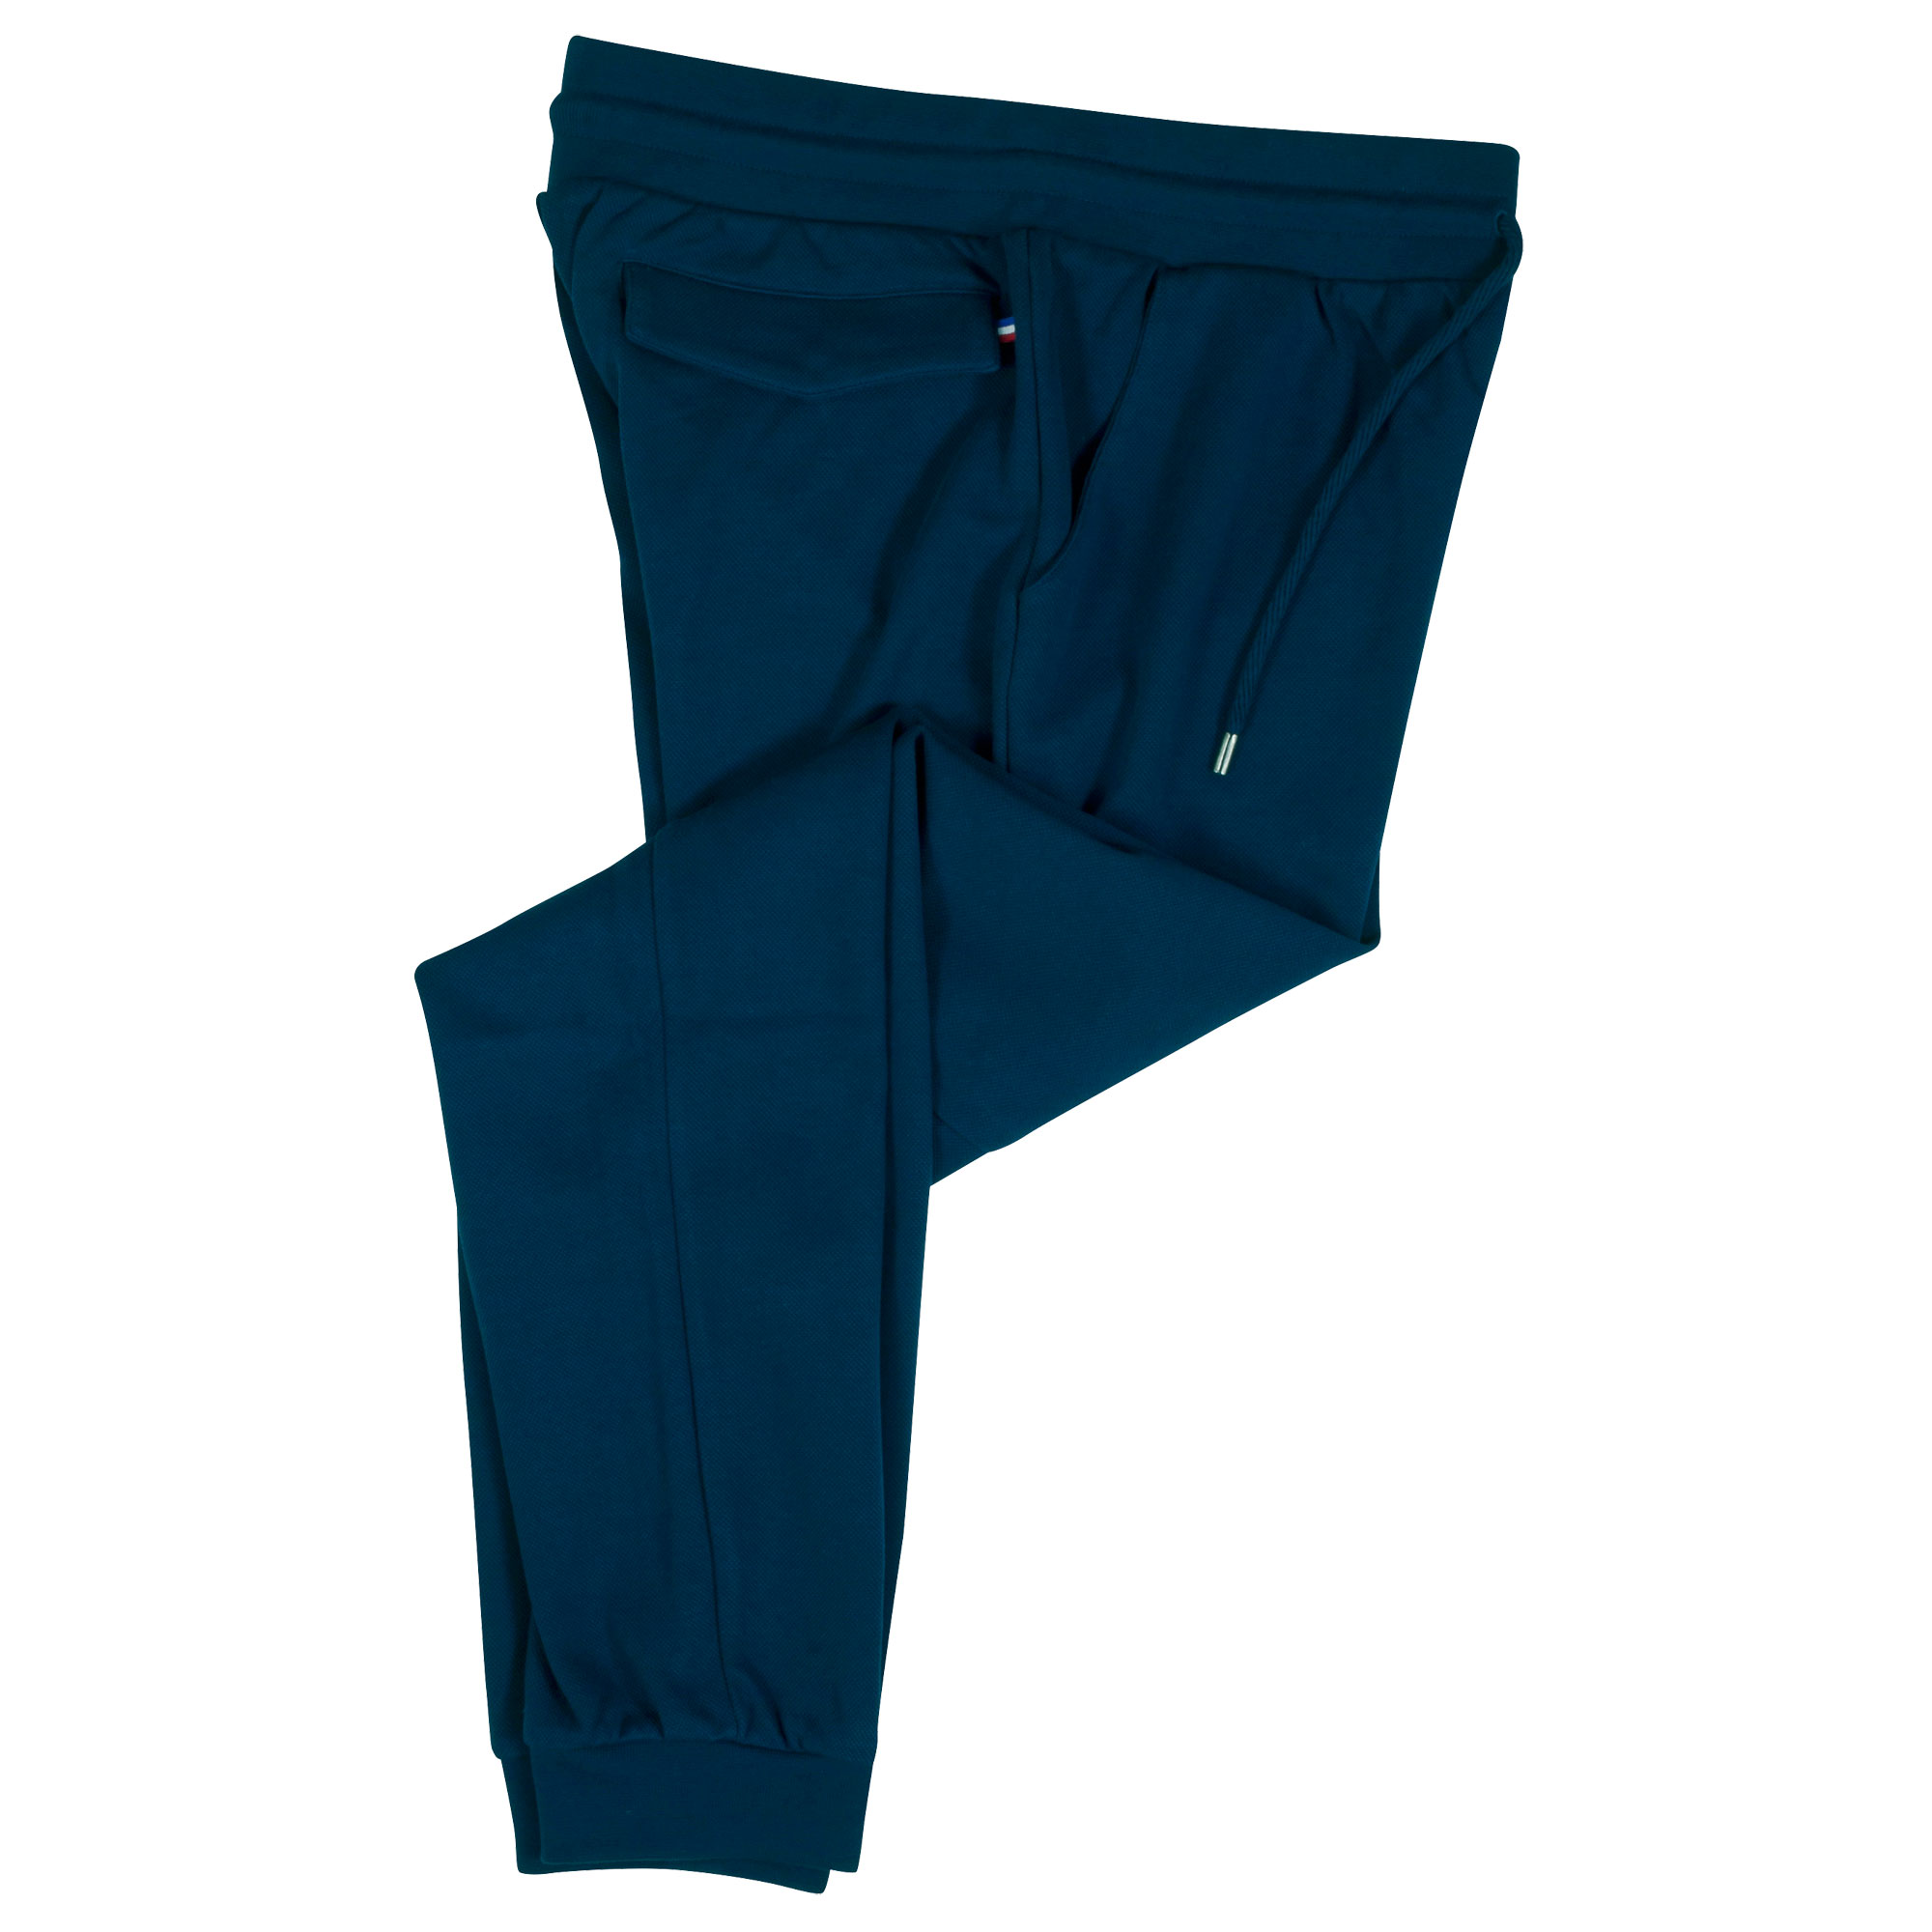 Le Coq Sportif Balti Sweat Pants - Navy - XL